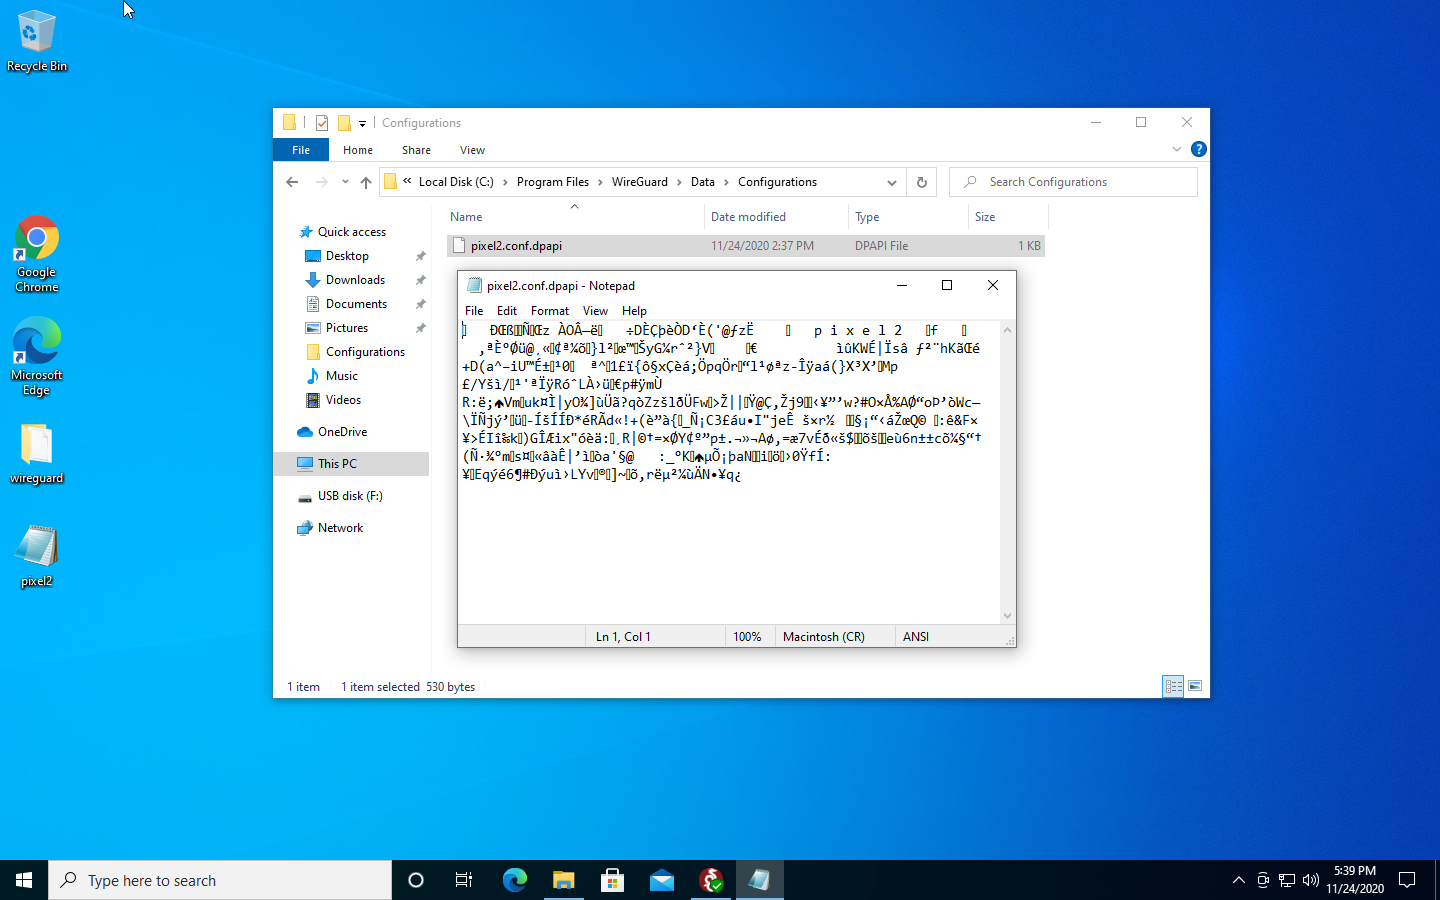 WireGuard used to store its configs under the user directory. Windows 10 really didn't like that, so it's (properly, in our opinion) been moved to a global configuration directory at C:\Program Files\WireGuard\Data\Configurations.